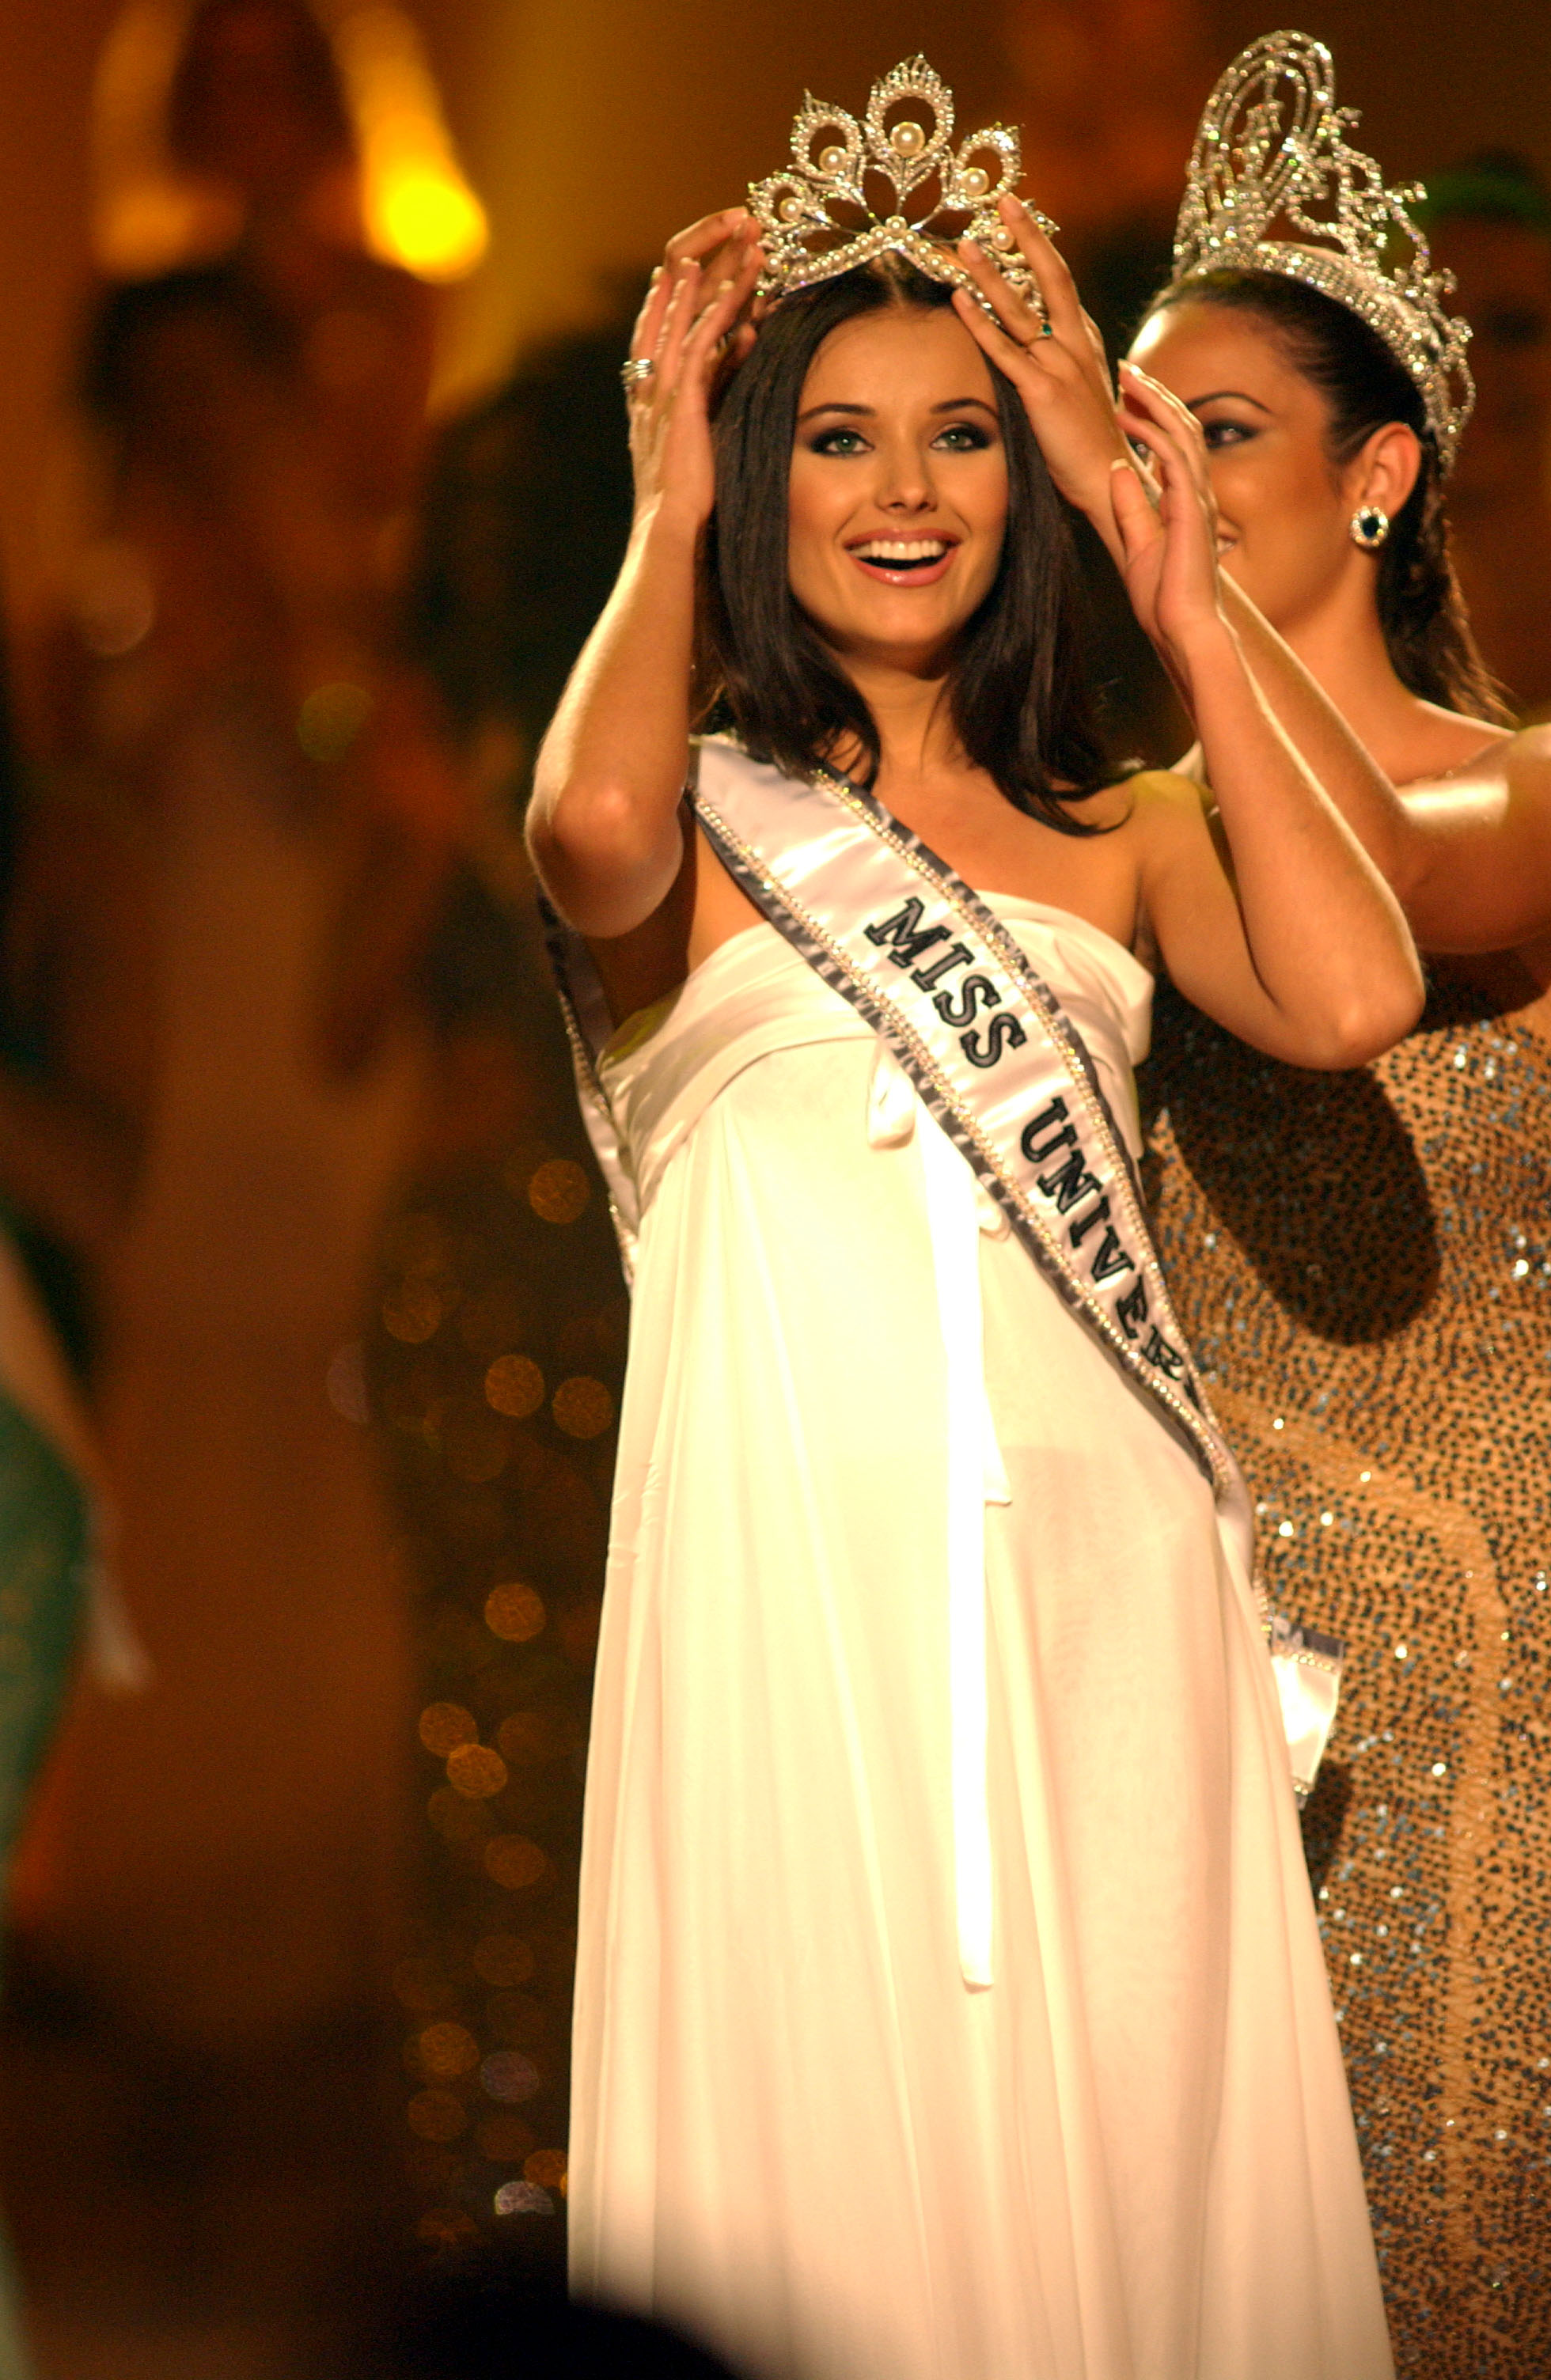 IN PHOTOS: Miss Universe crowns through the years